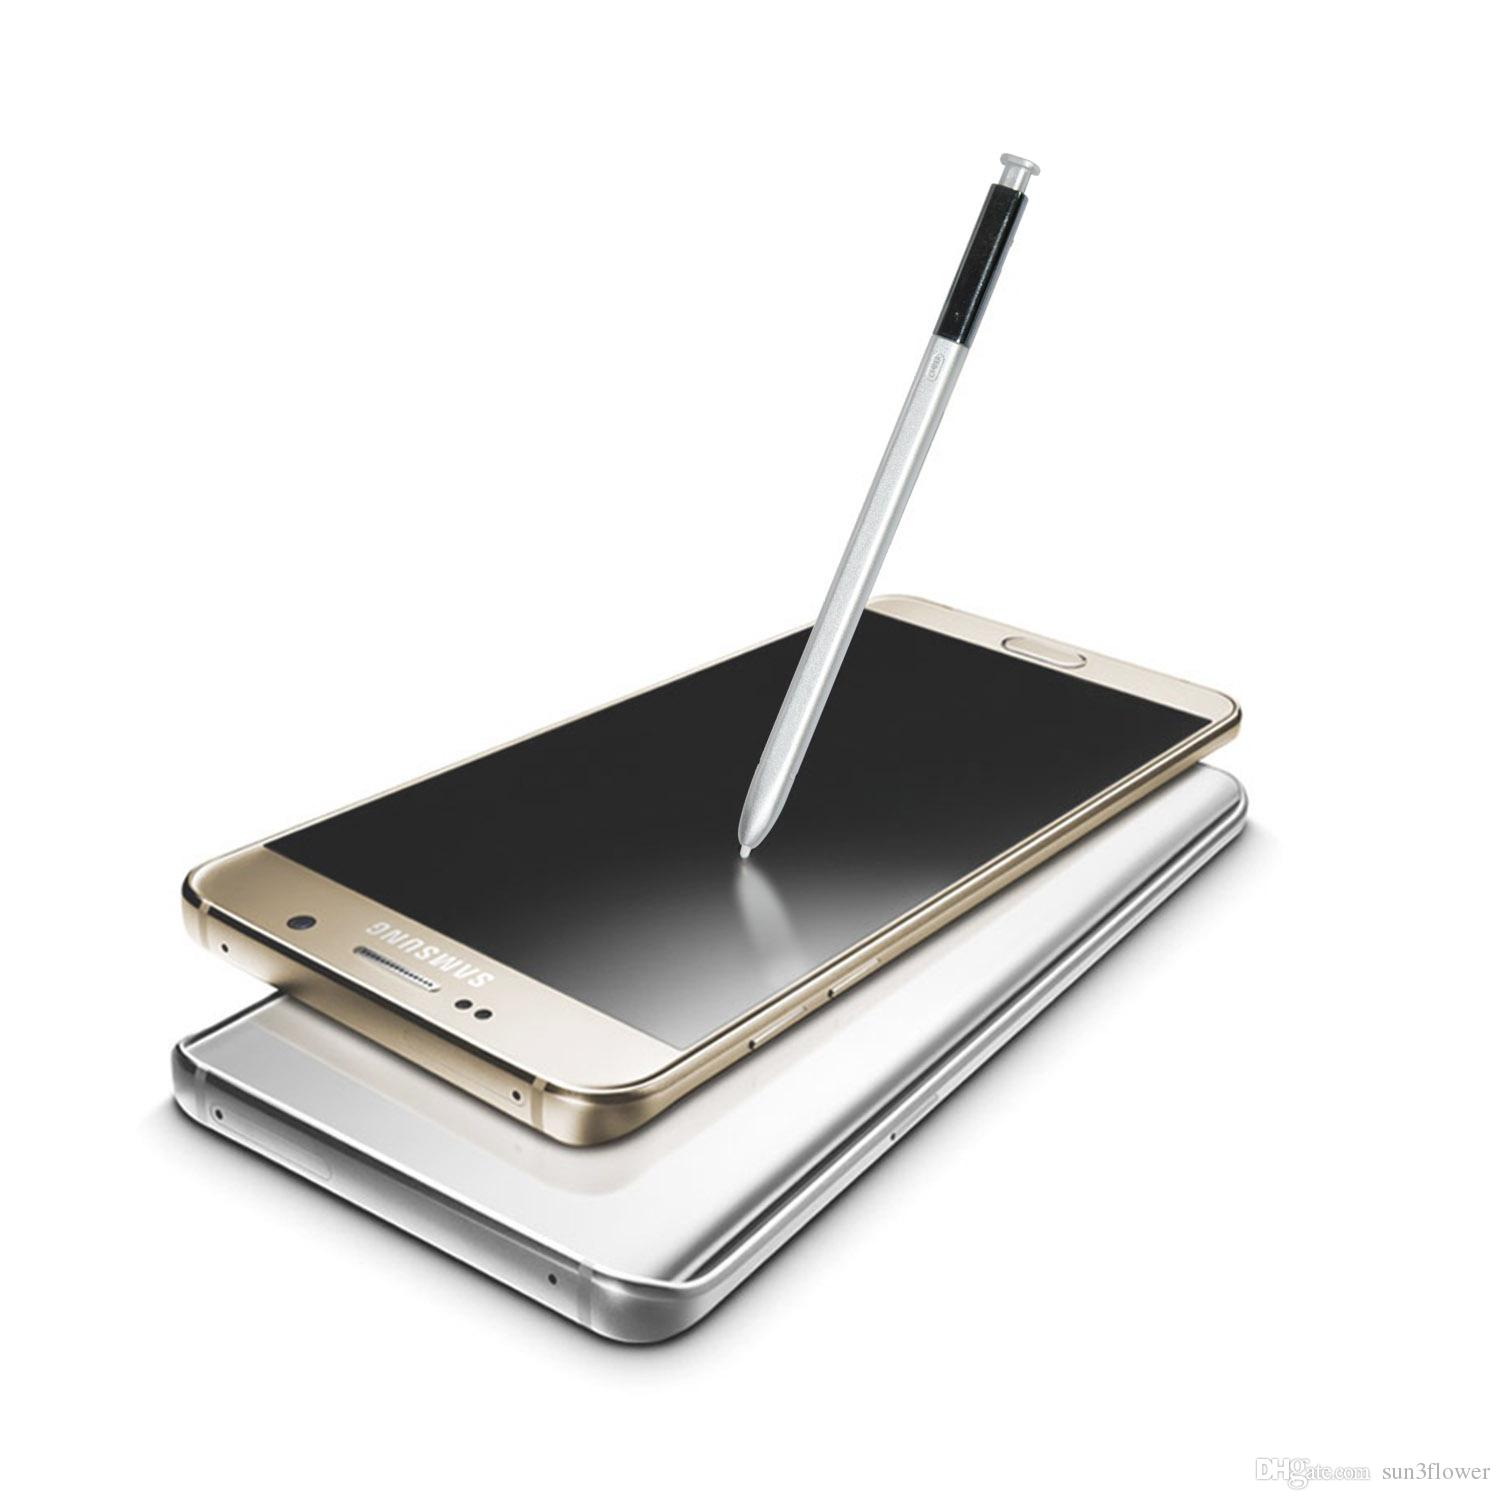 New Replacement Touch Stylus S Pen For Samsung Galaxy Note 5 AT&T Verizon T-Mobile Stylus Pen